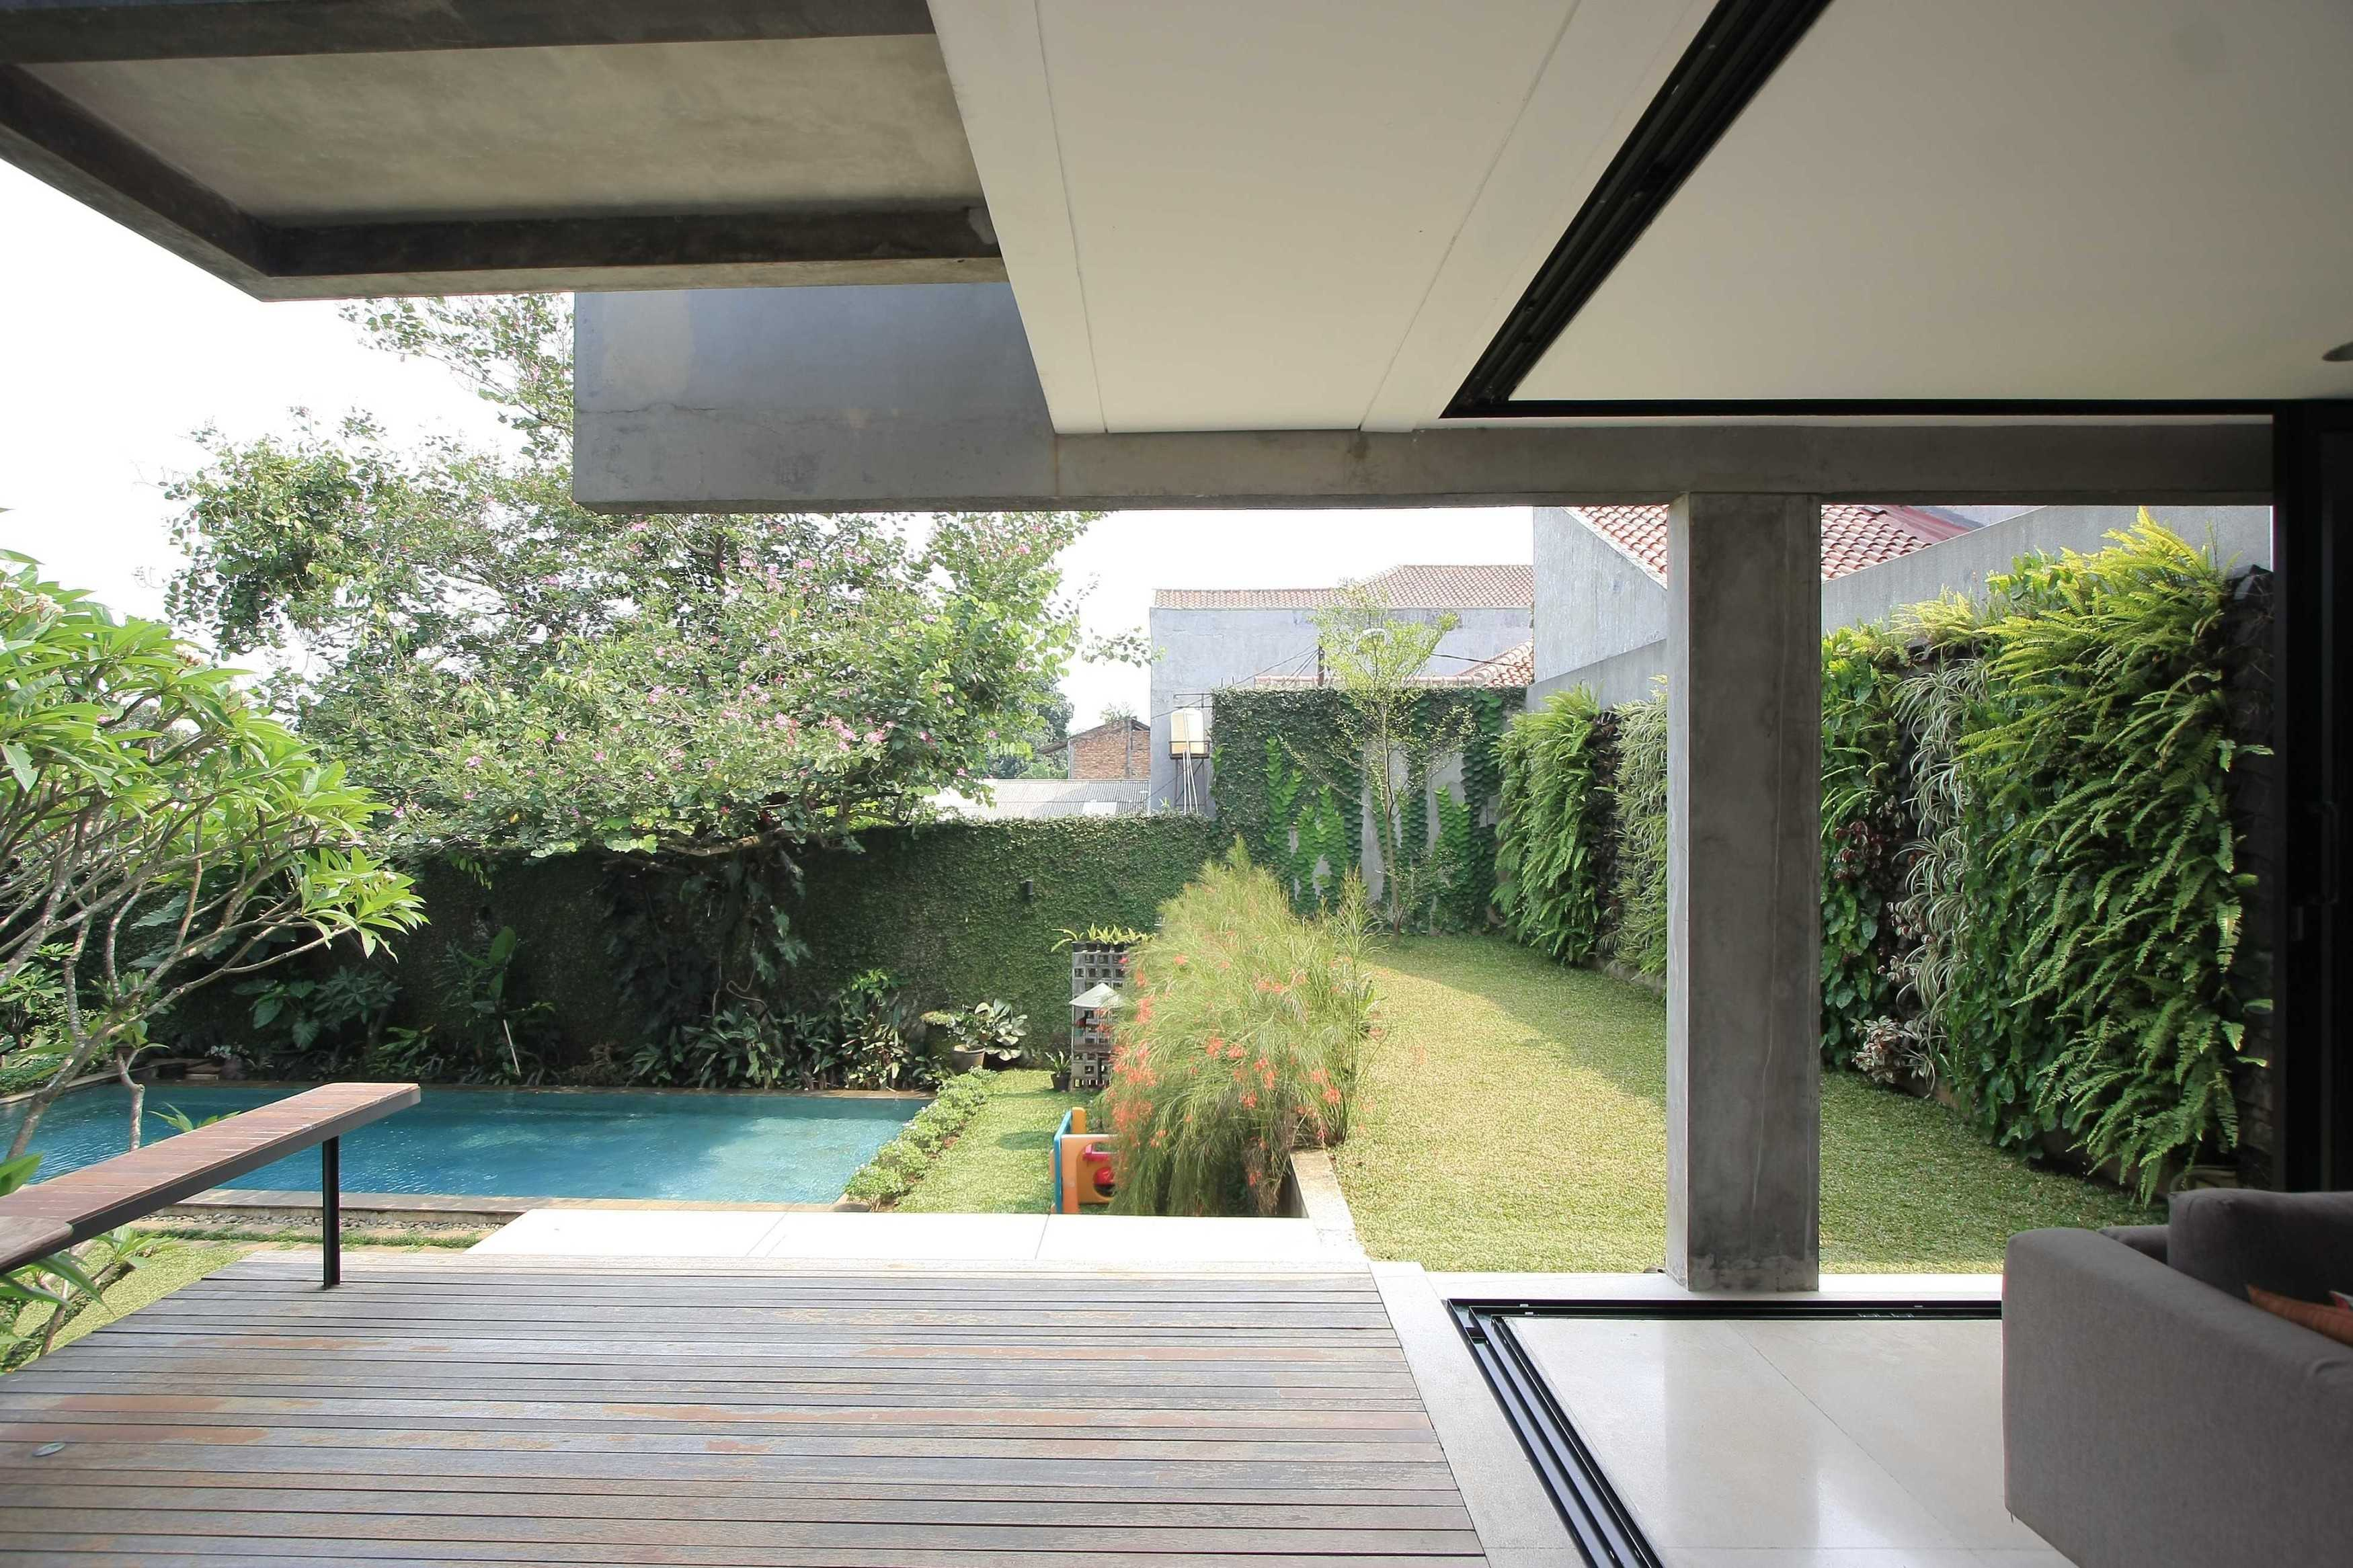 Sub Swadaya House Jakarta, Indonesia Jakarta, Indonesia Backyard And Swimming Pool   9342